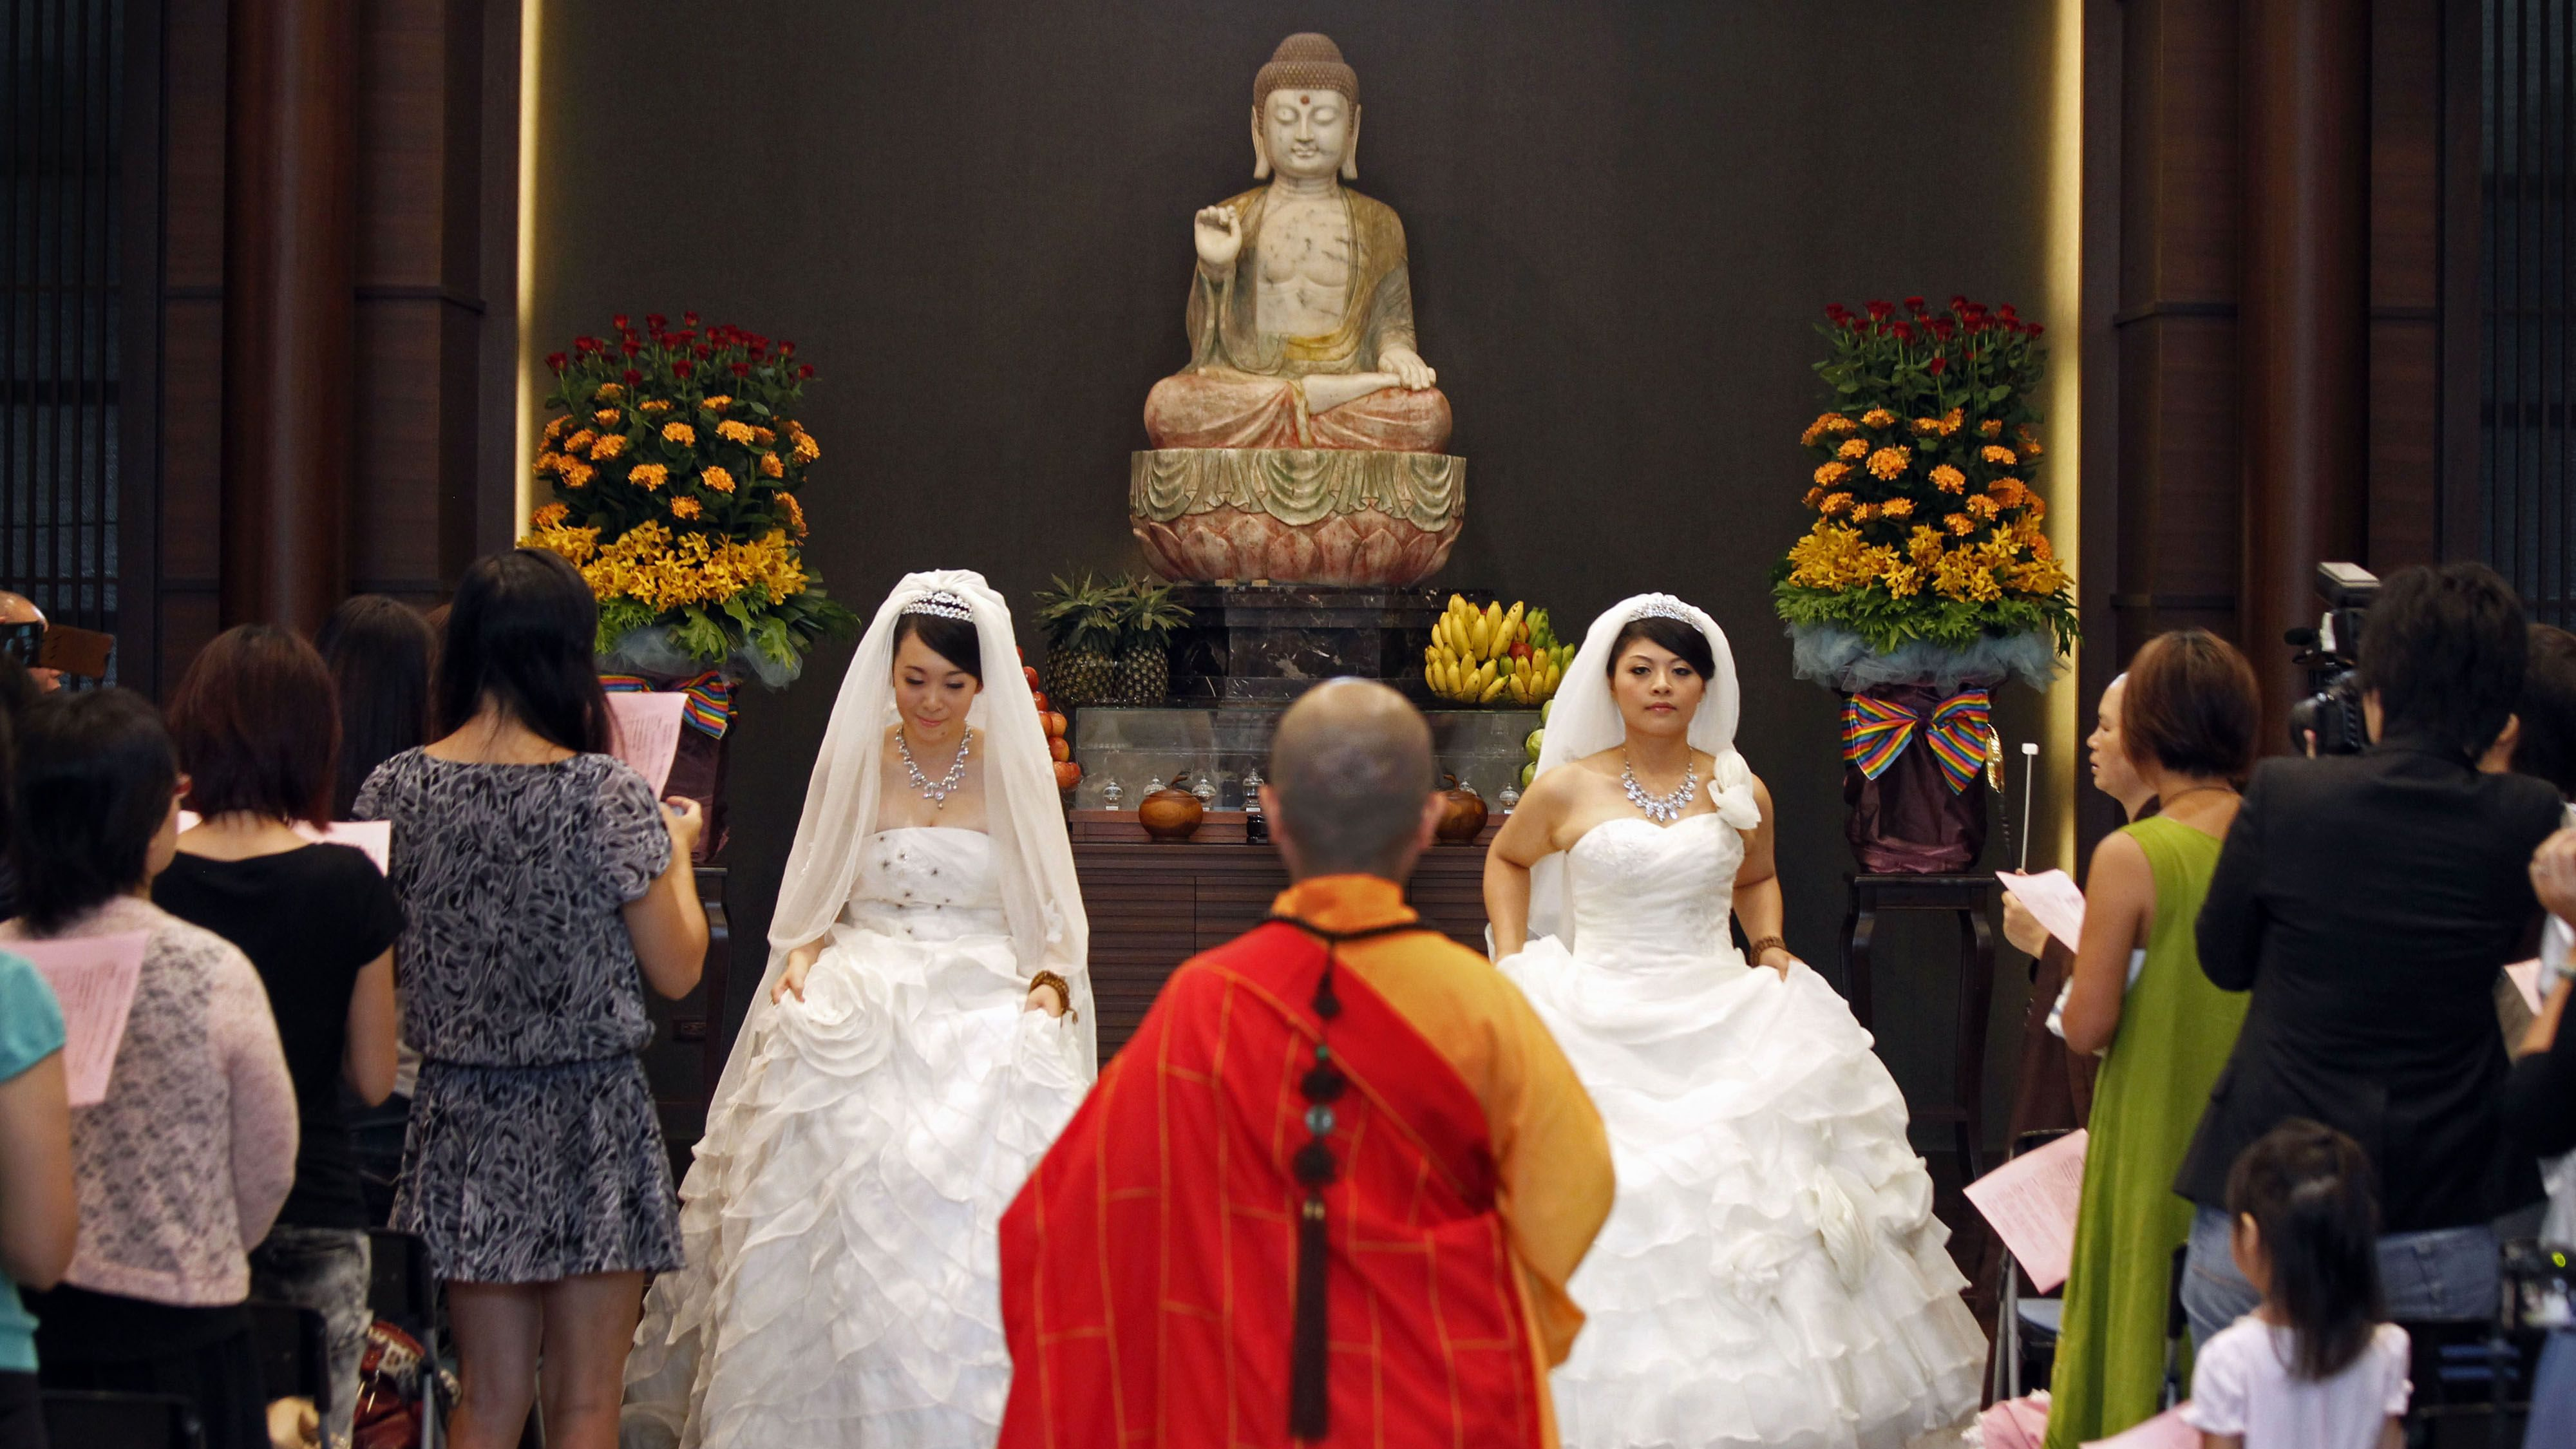 Buddhist view on homosexual marriage laws